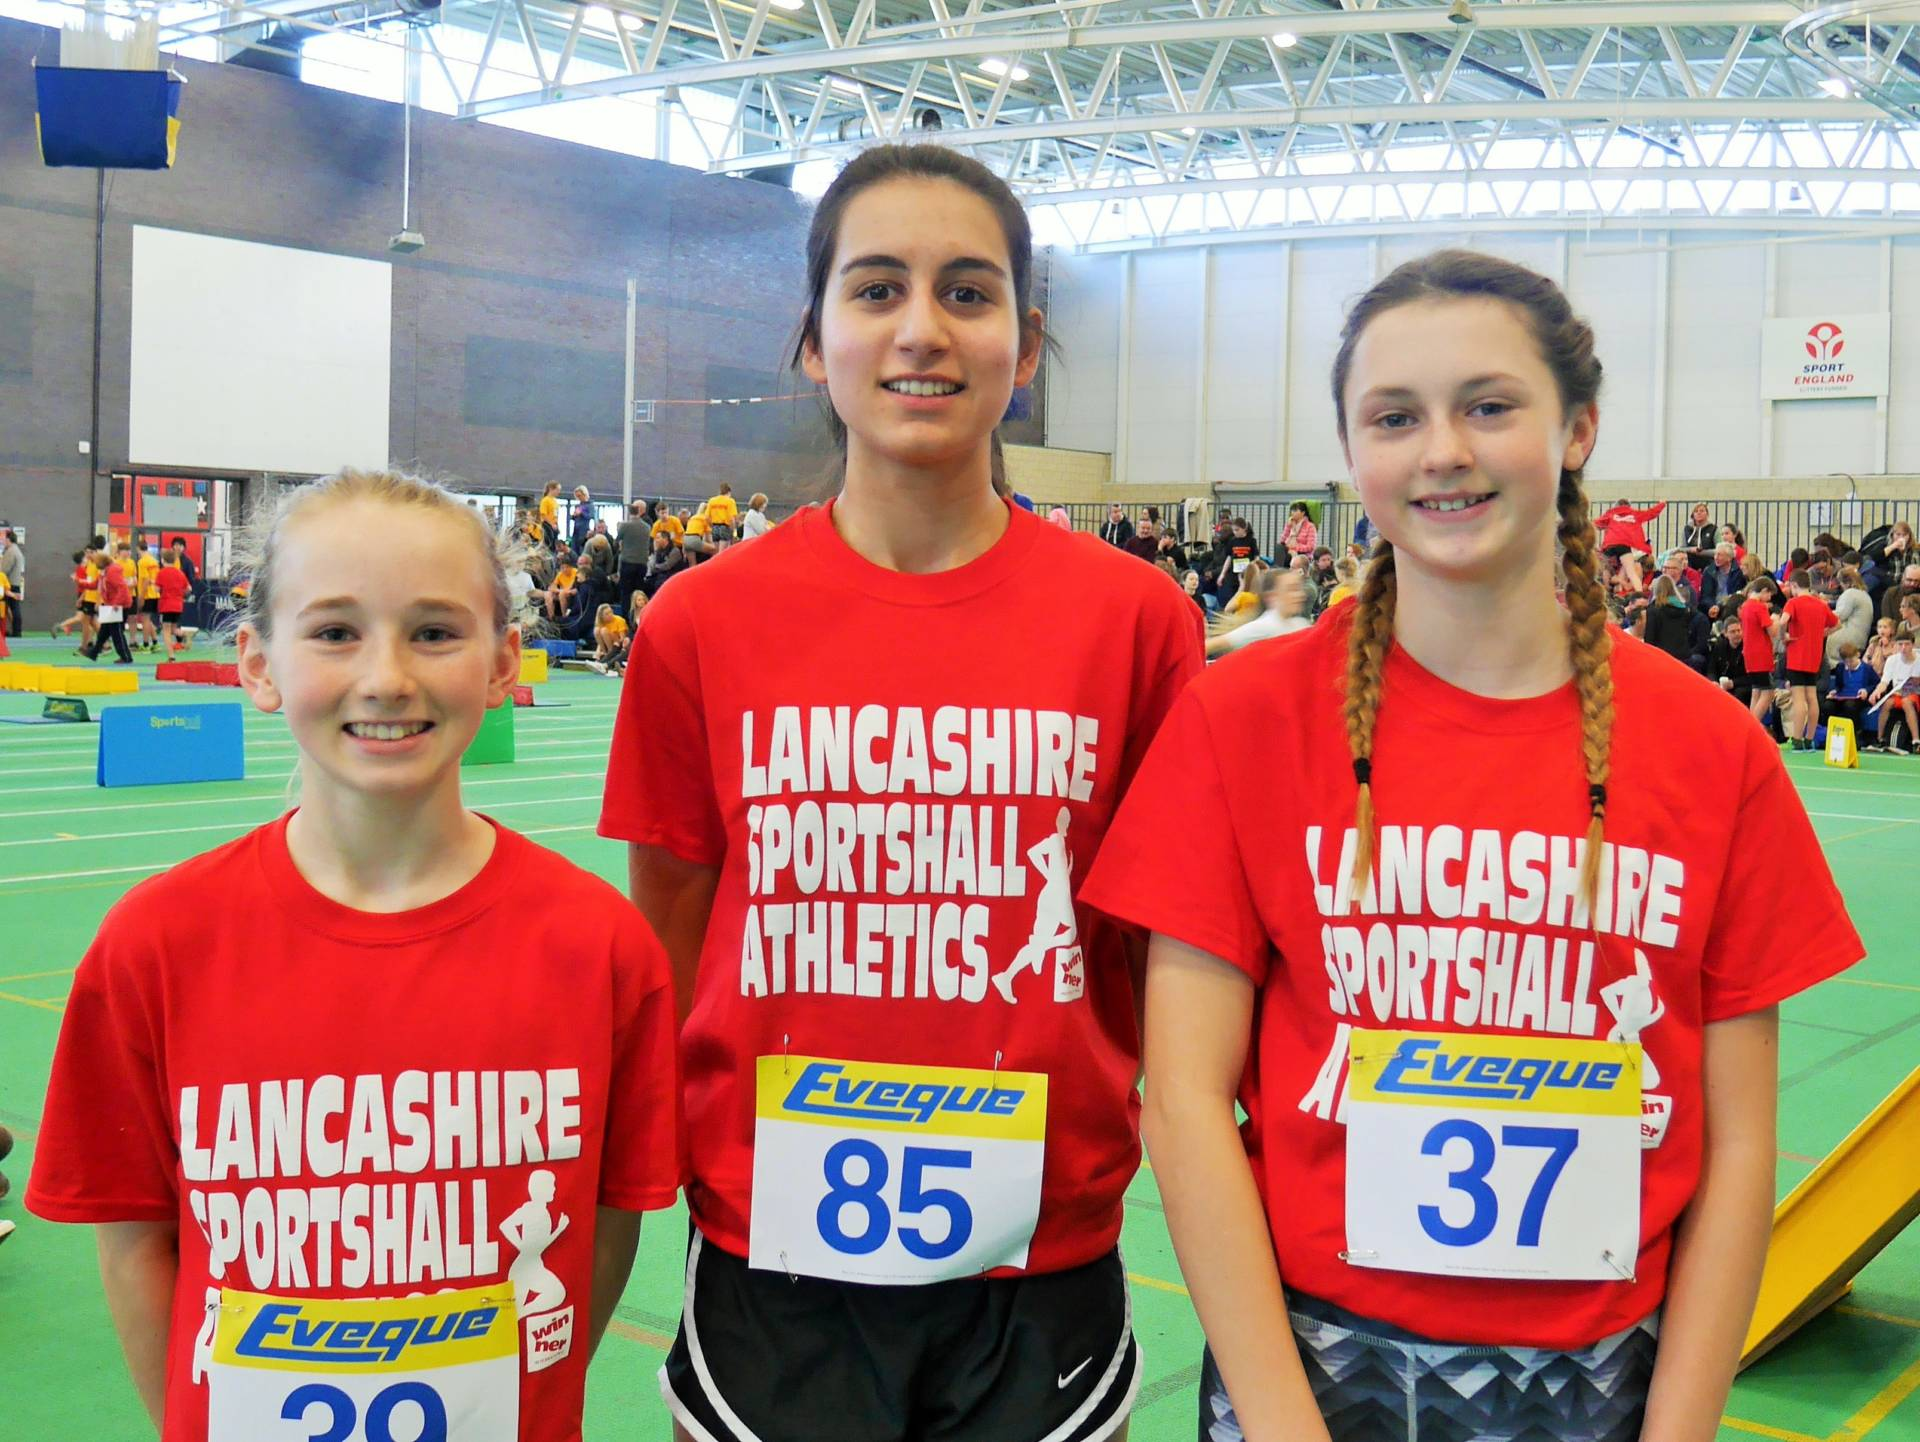 Harriers Girls compete for Lancashire in Sportshall Regional Final